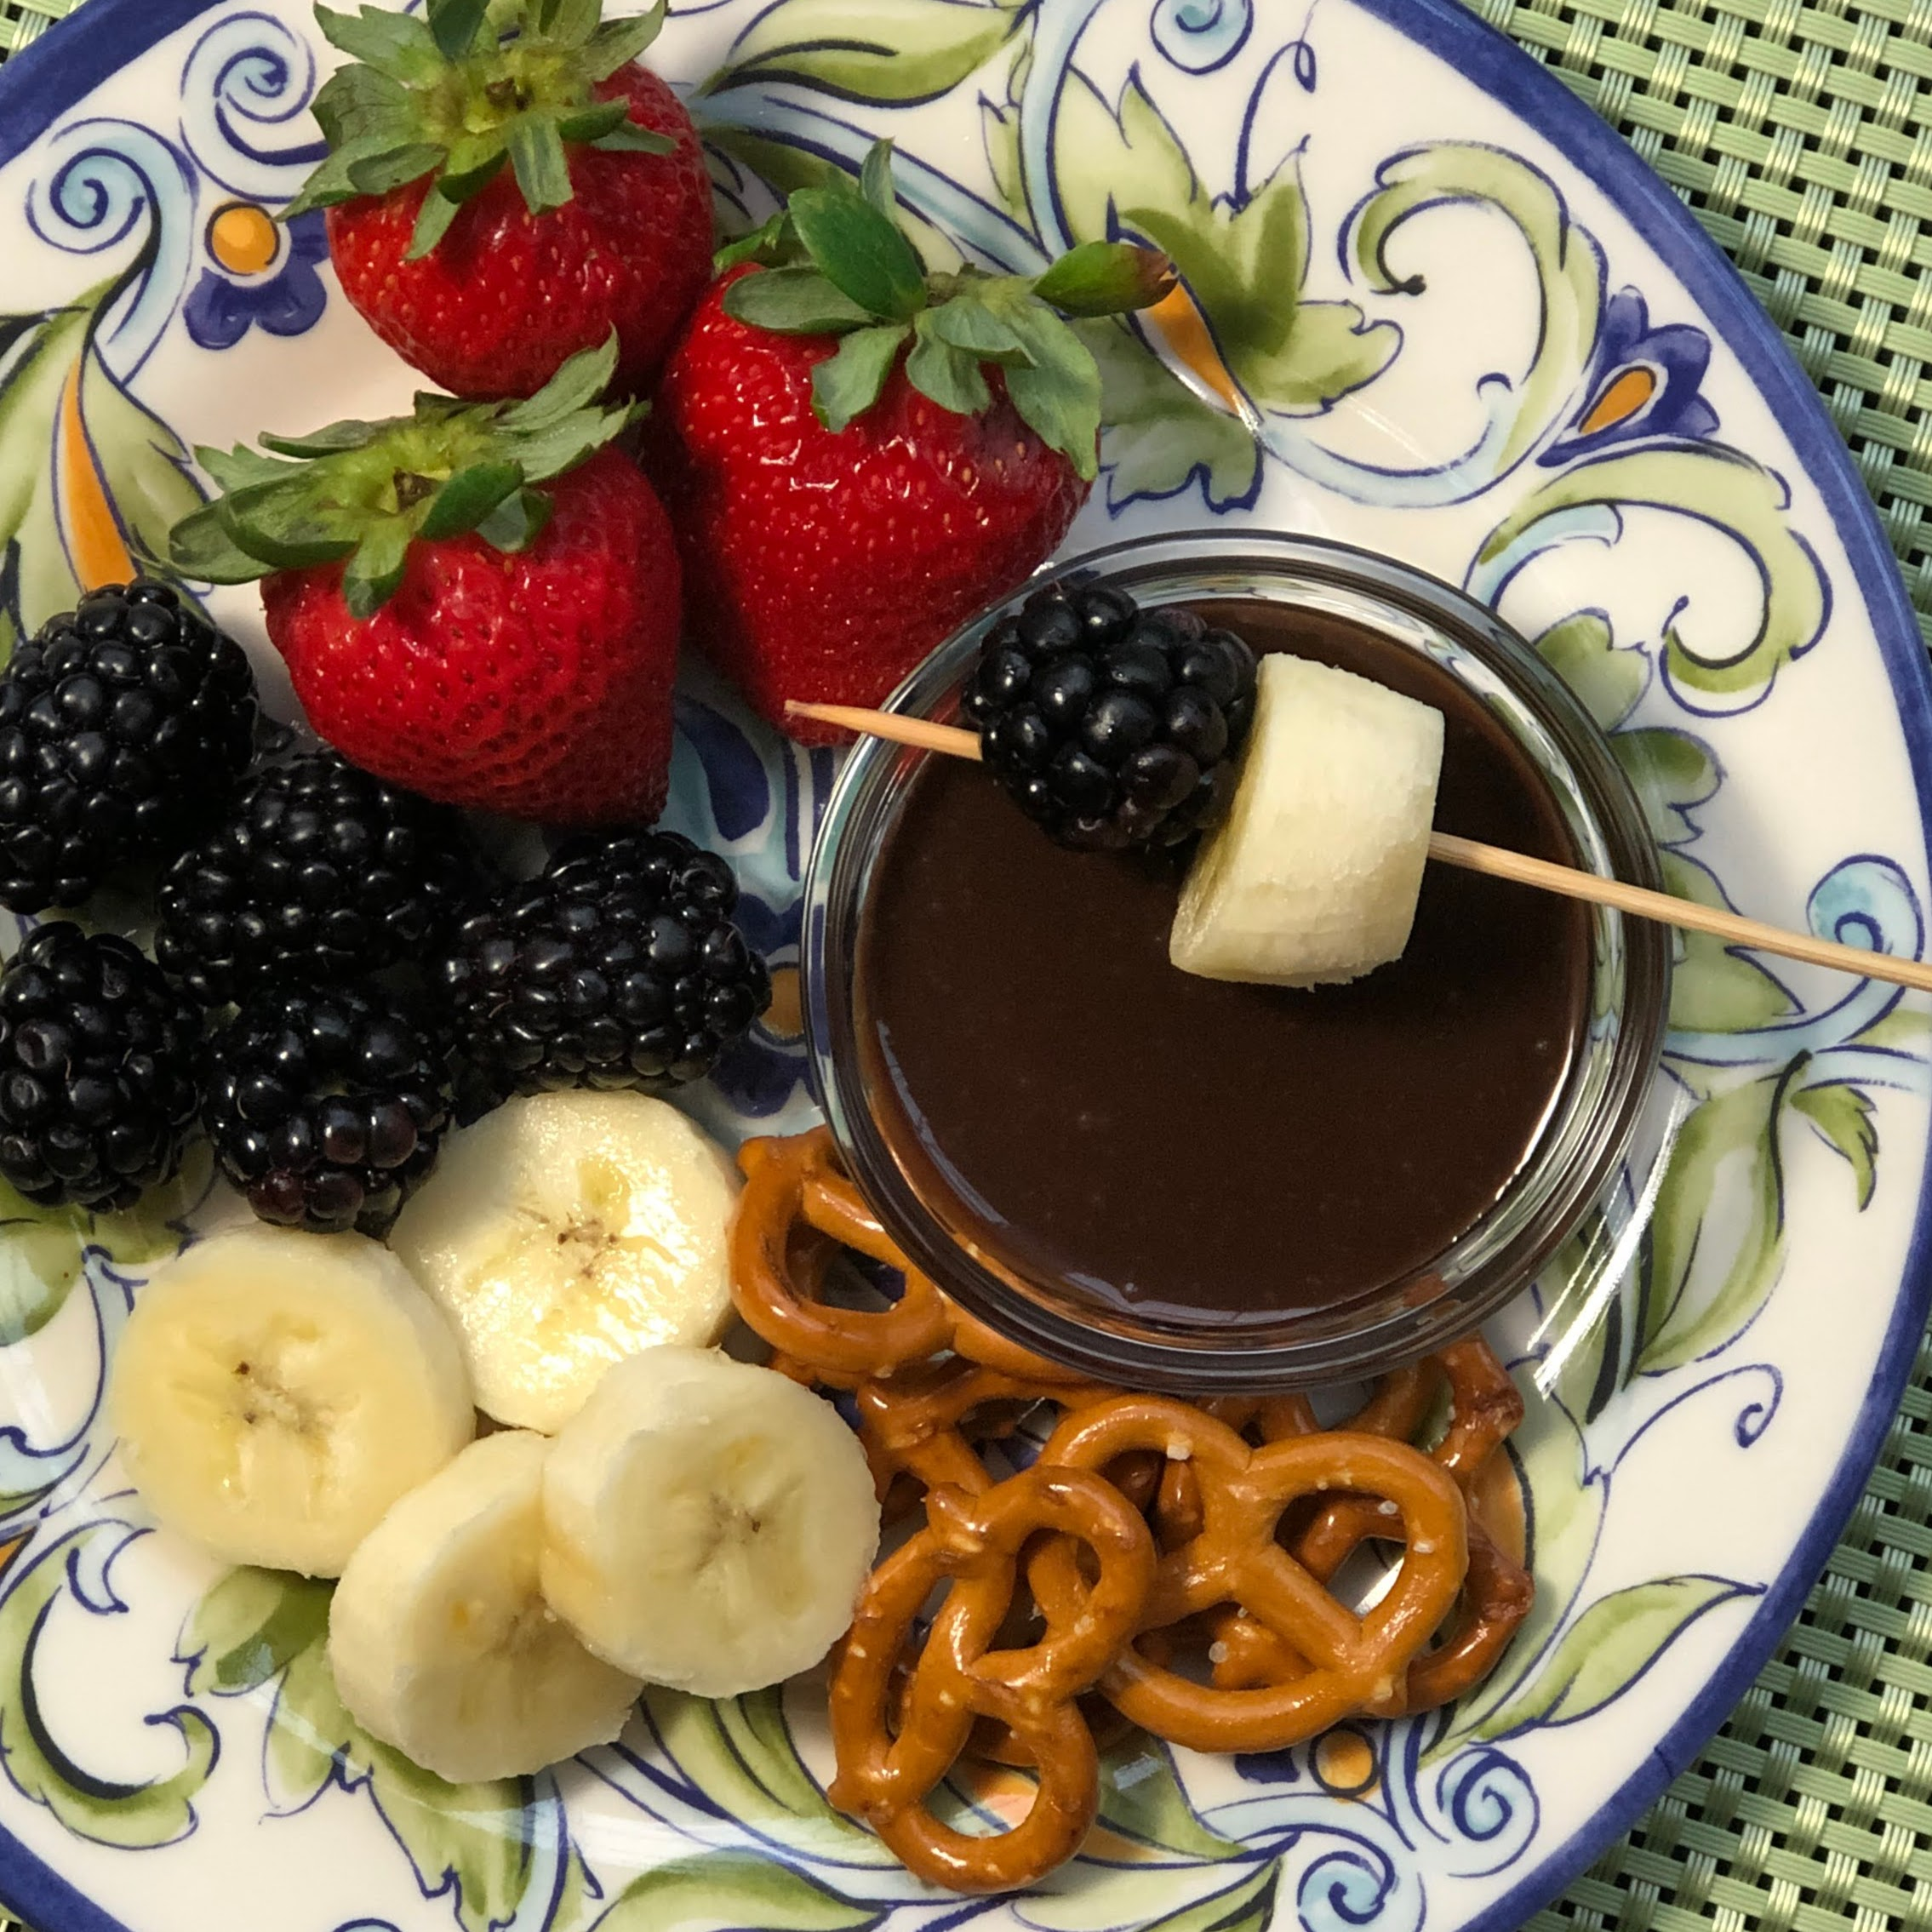 Totally Groovy Chocolate Fondue Kim's Cooking Now